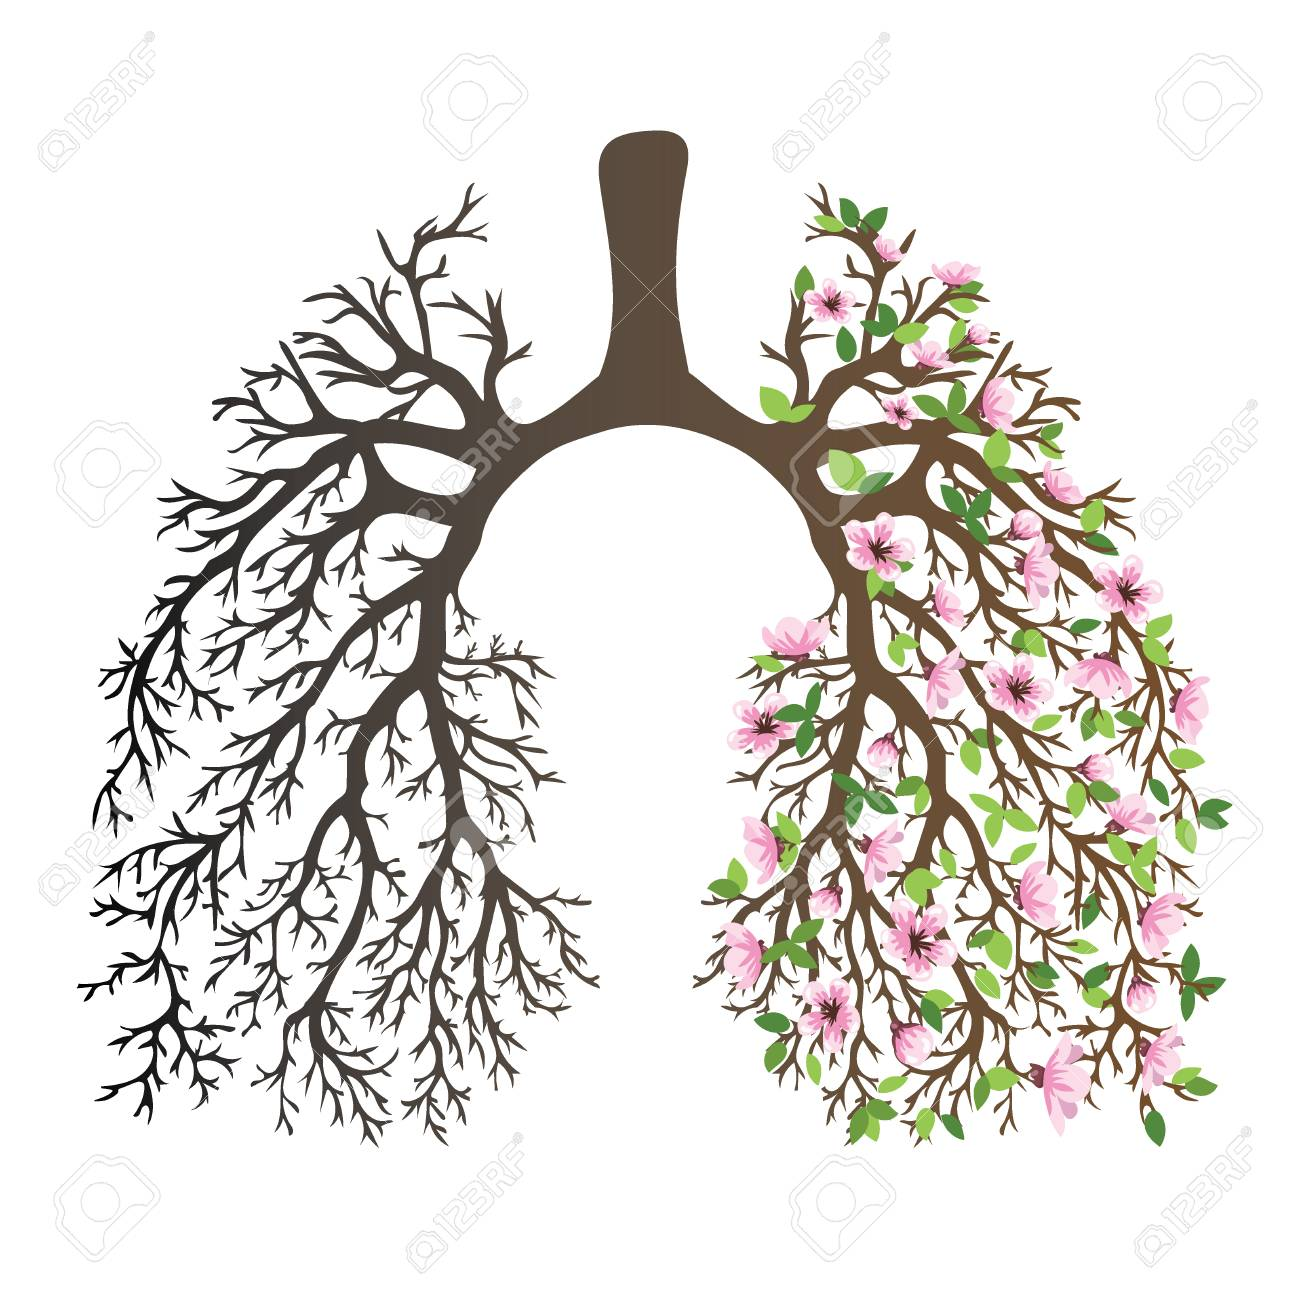 1300x1300 Human Lungs. Respiratory System. Healthy Lungs. Light In The Form